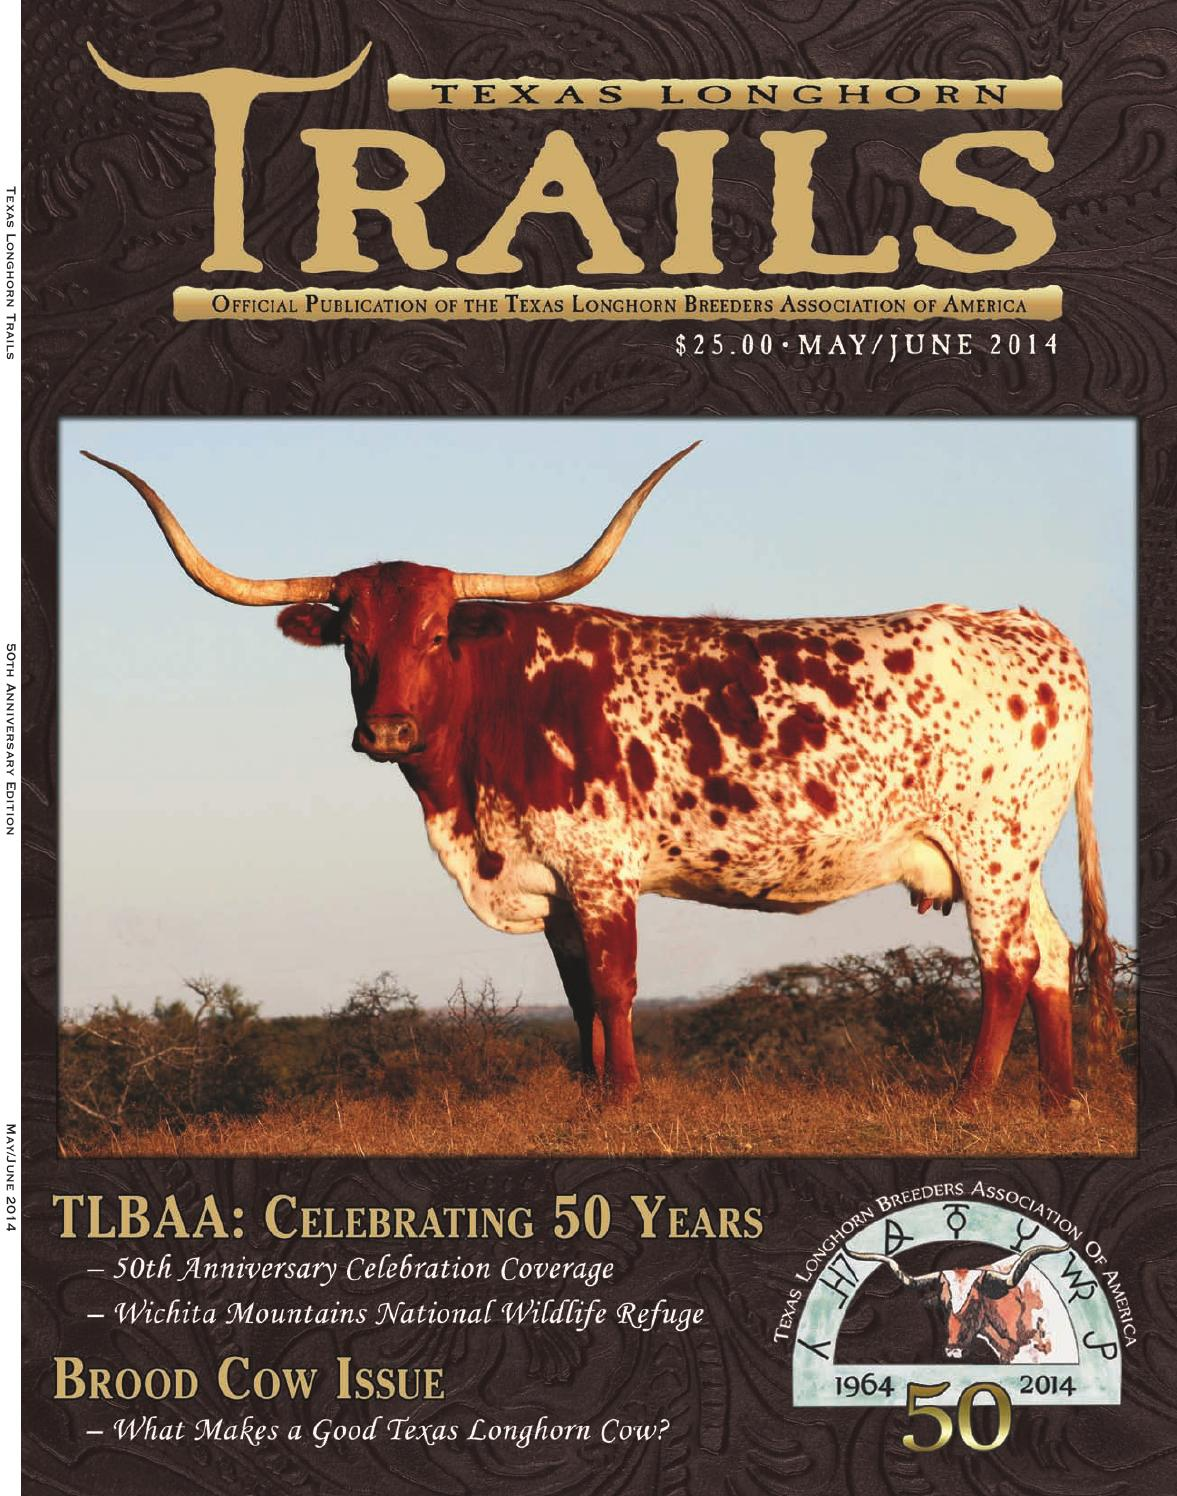 MayJune 2014 Trails Magazine 50th Anniversary Edition